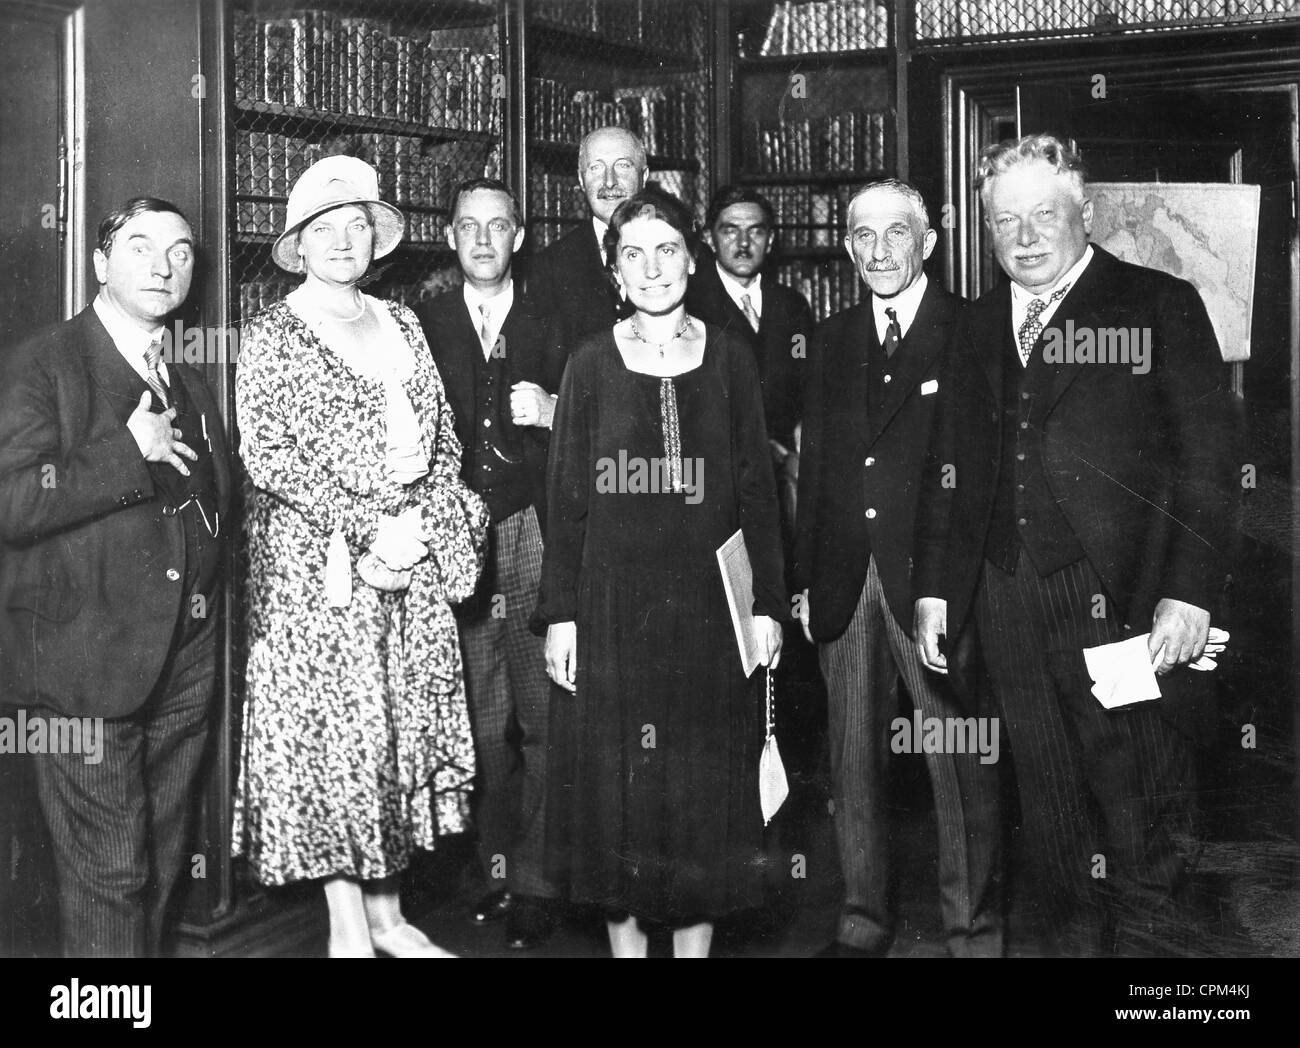 Anna Freud receives the Goethe award for her father Sigmund Freud, 1930 - Stock Image